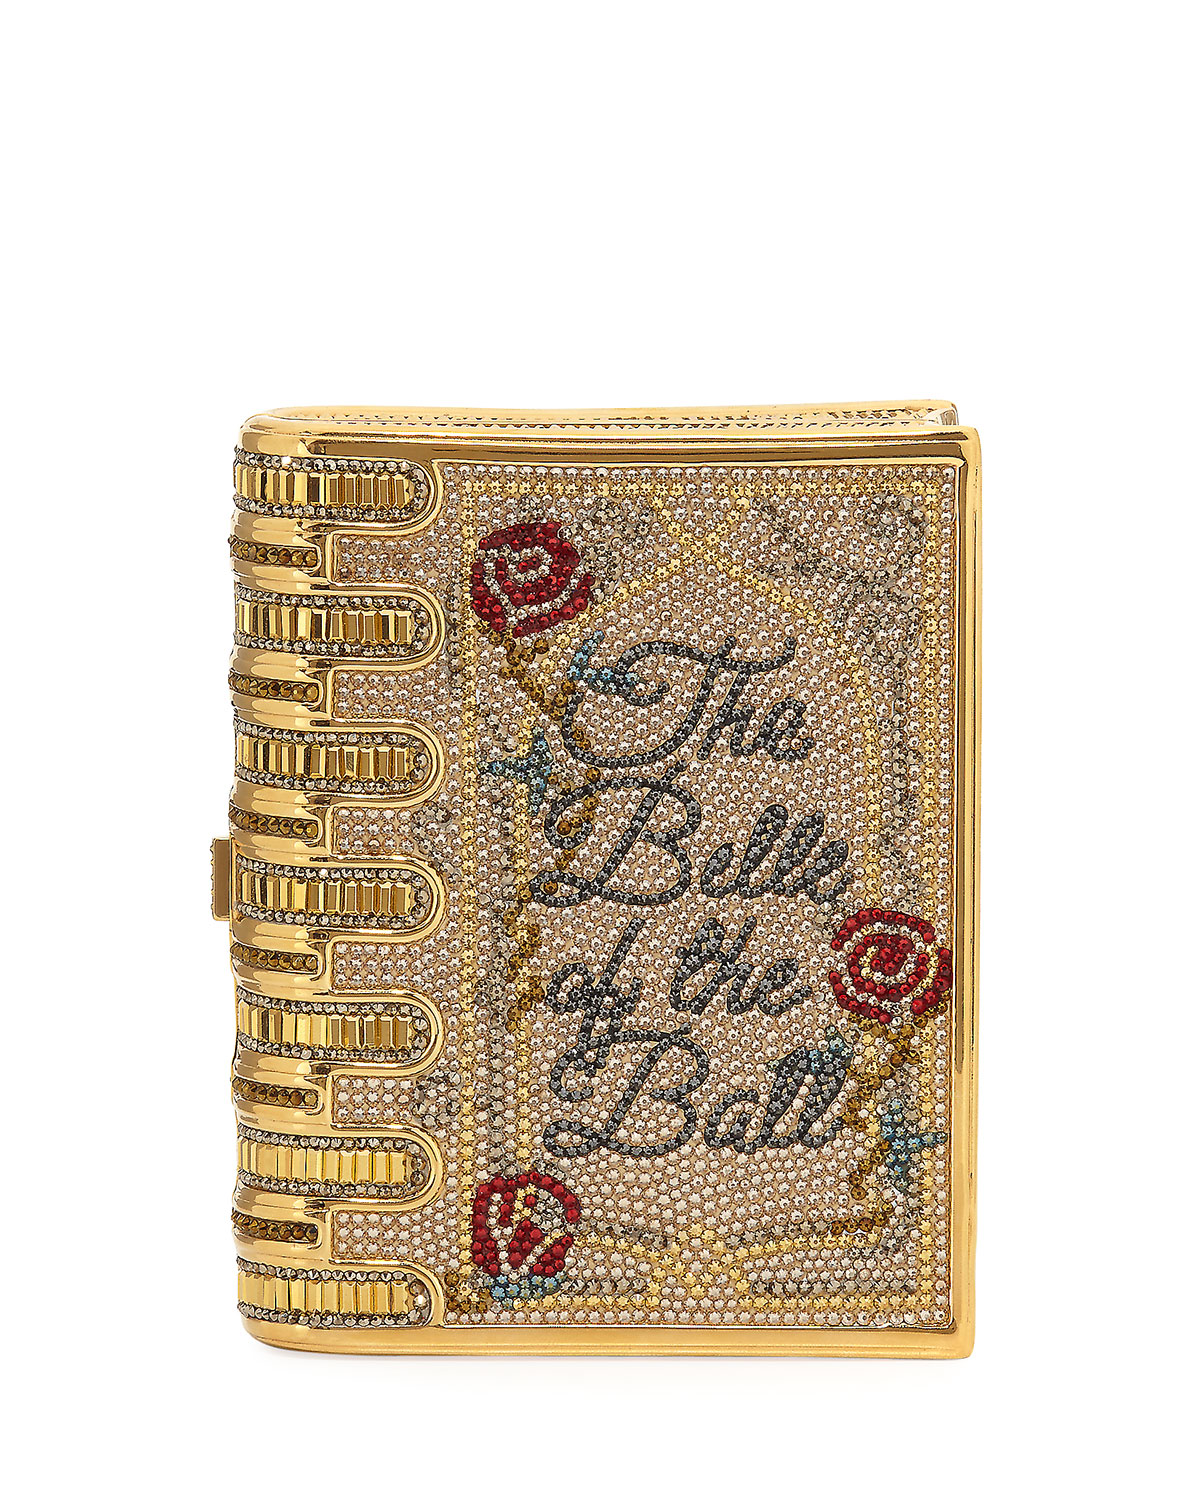 Disney S Beauty And The Beast Book Clutch Bag